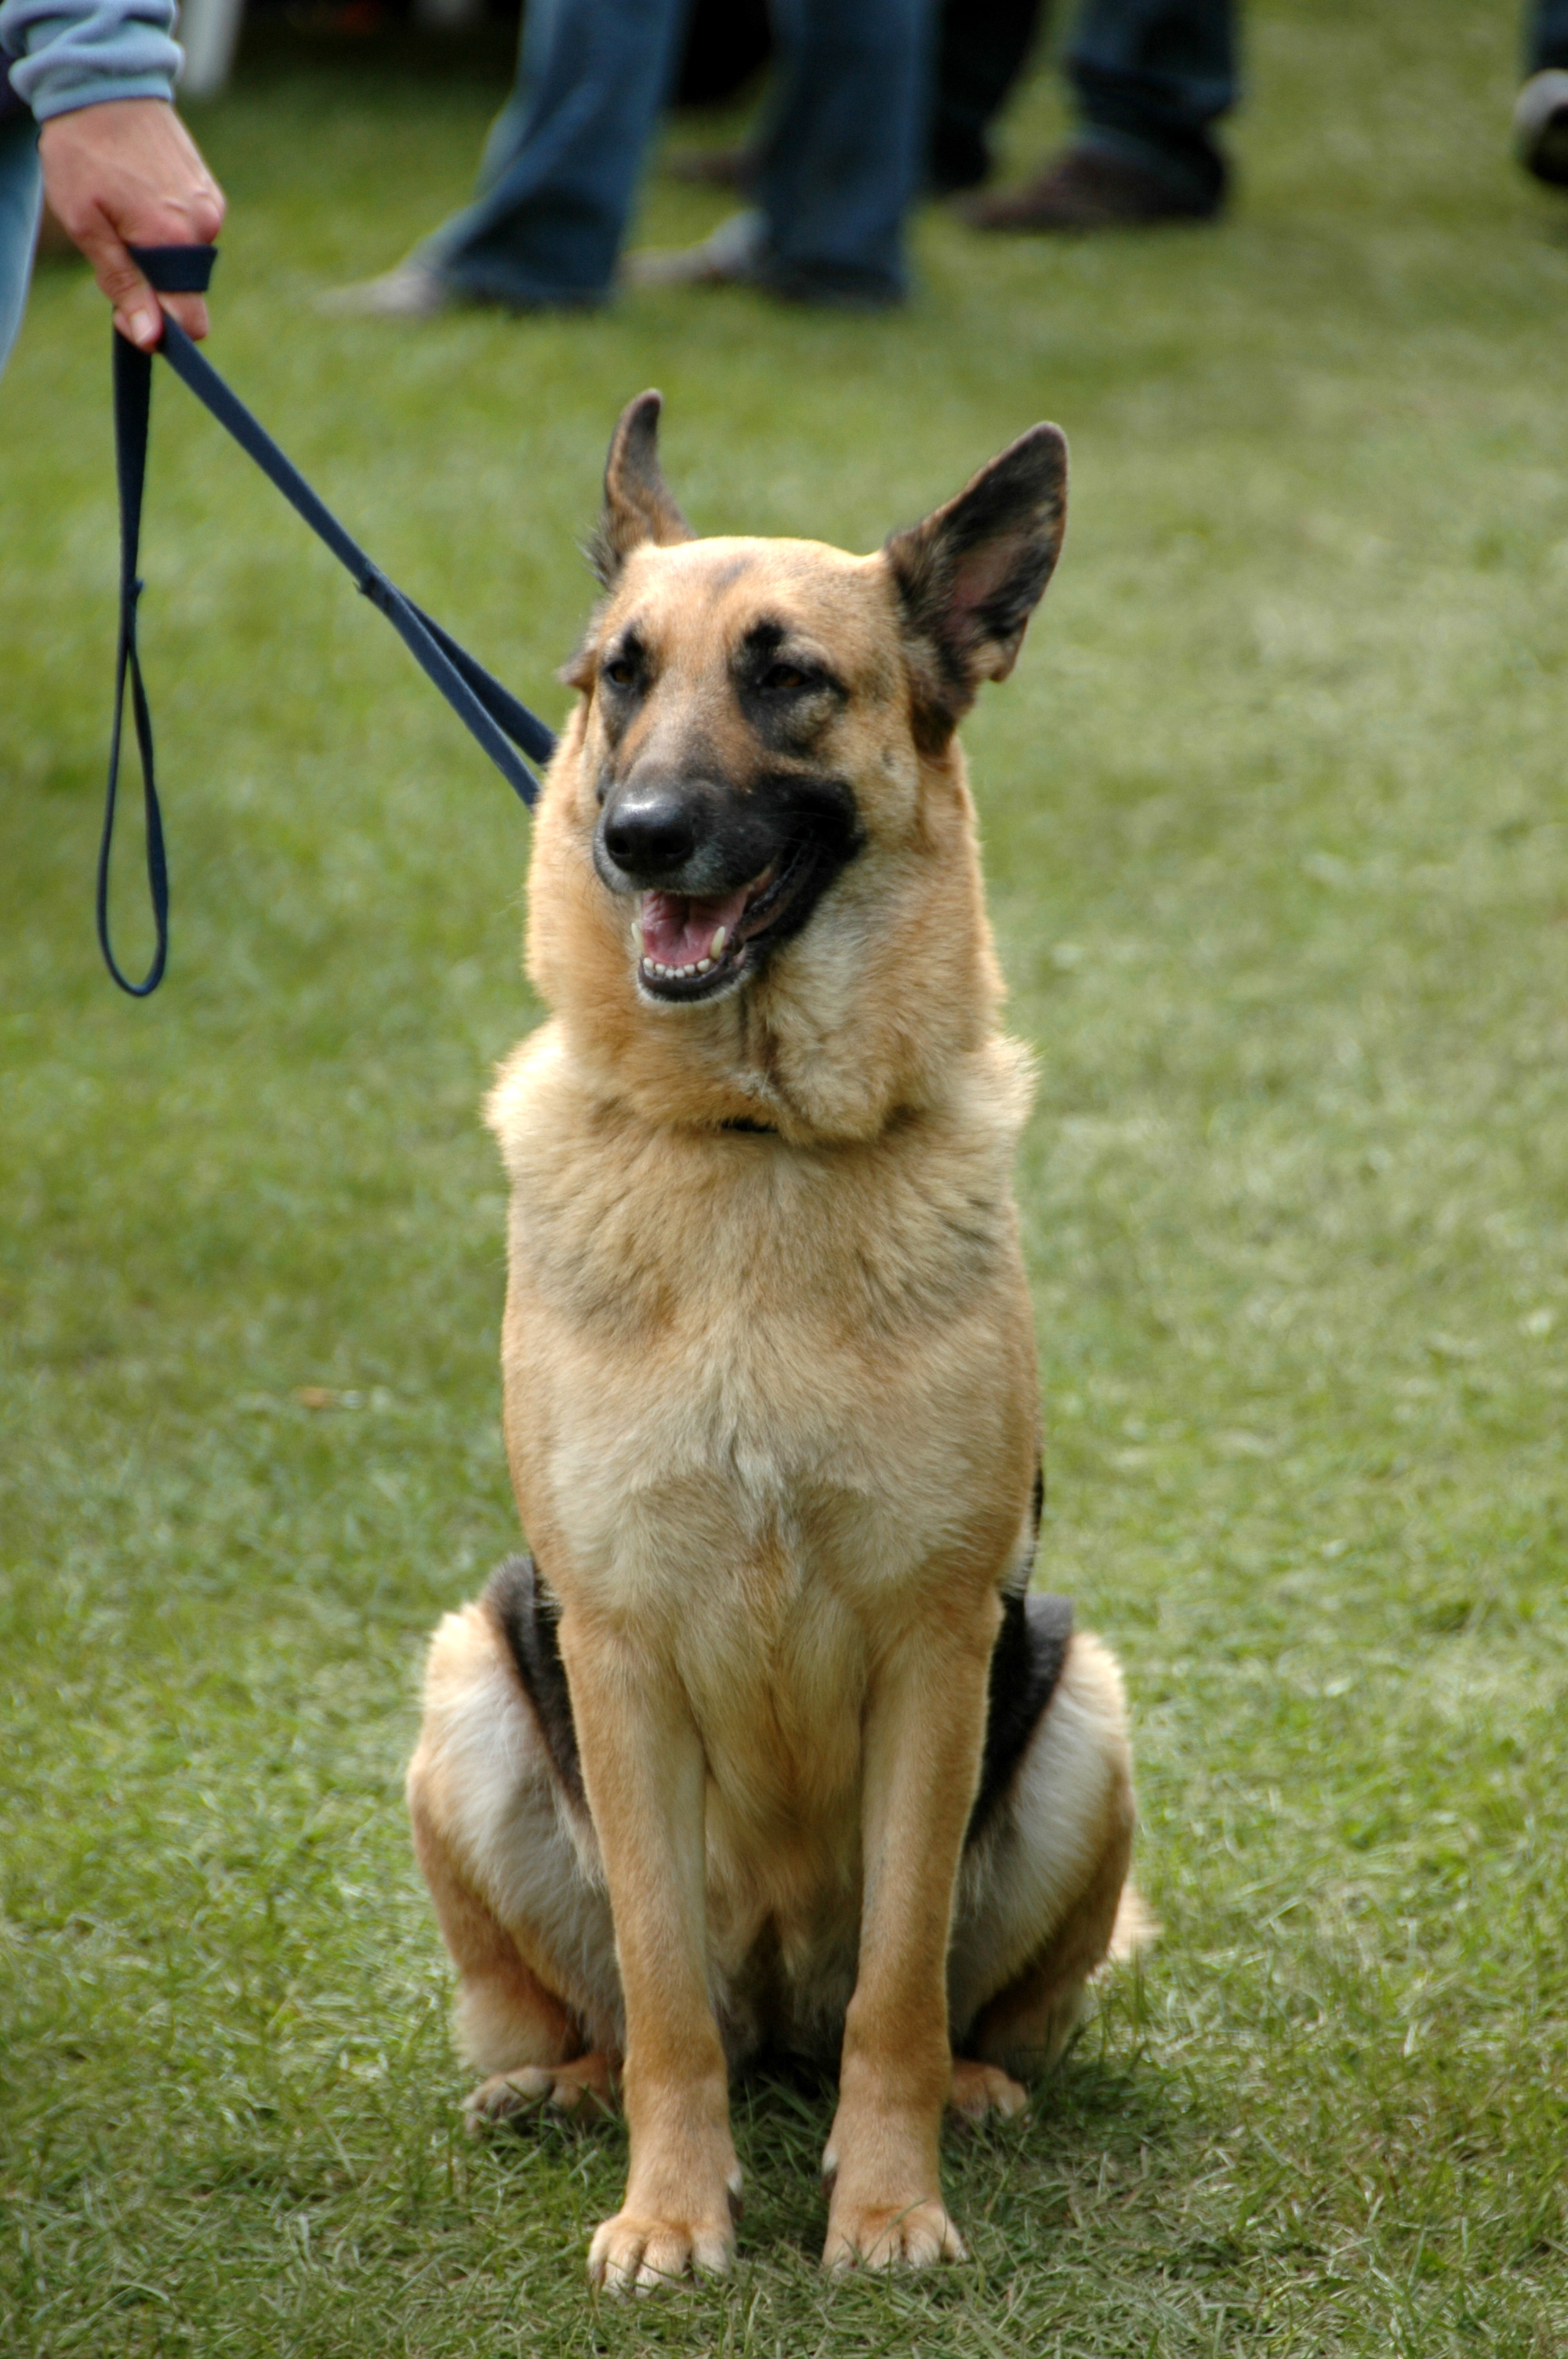 File:German Shepherd Dog sitting leash.jpg - Wikimedia Commons